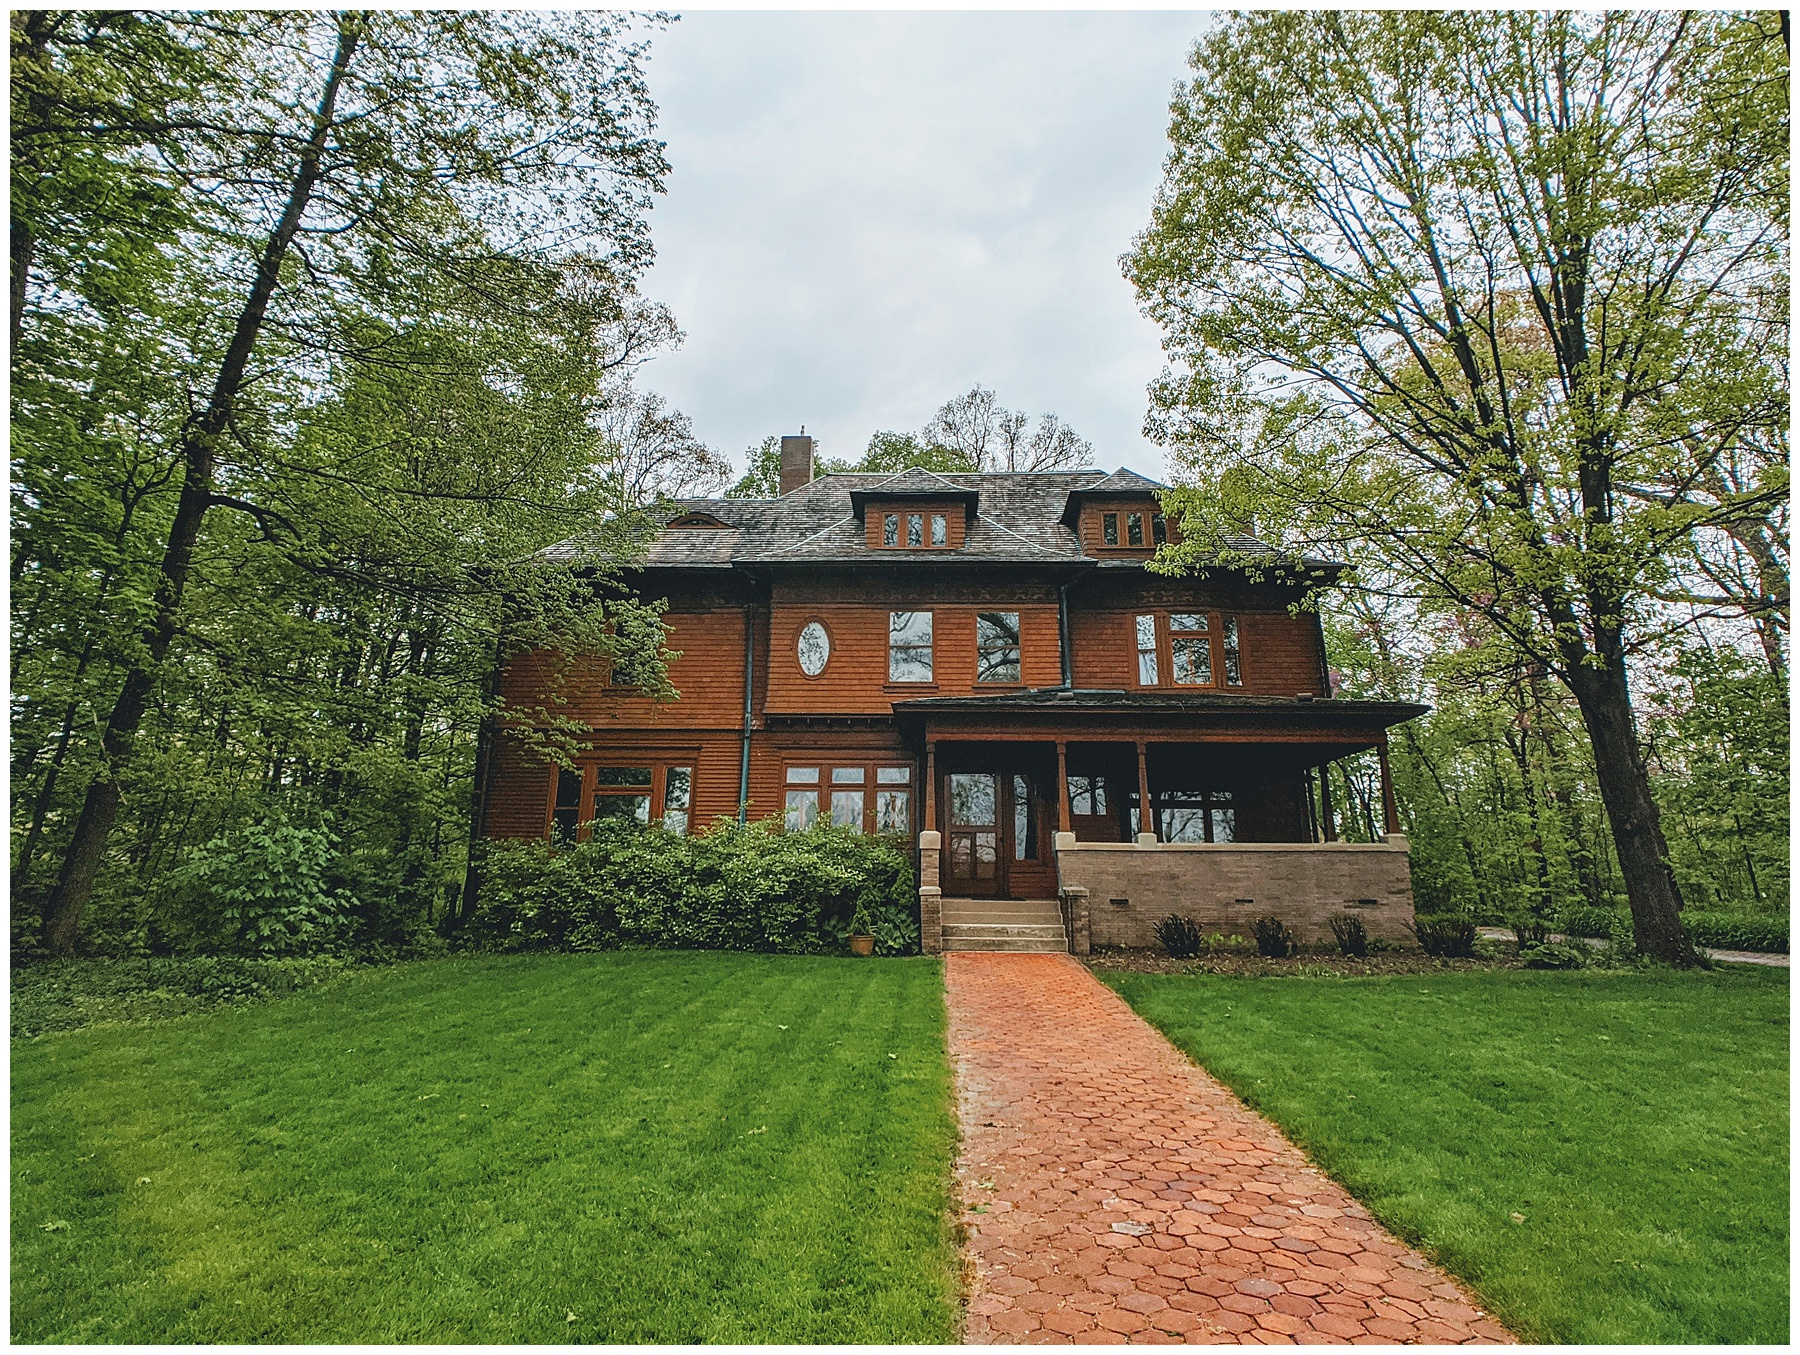 Older style home with character and charm and brick path to house front.